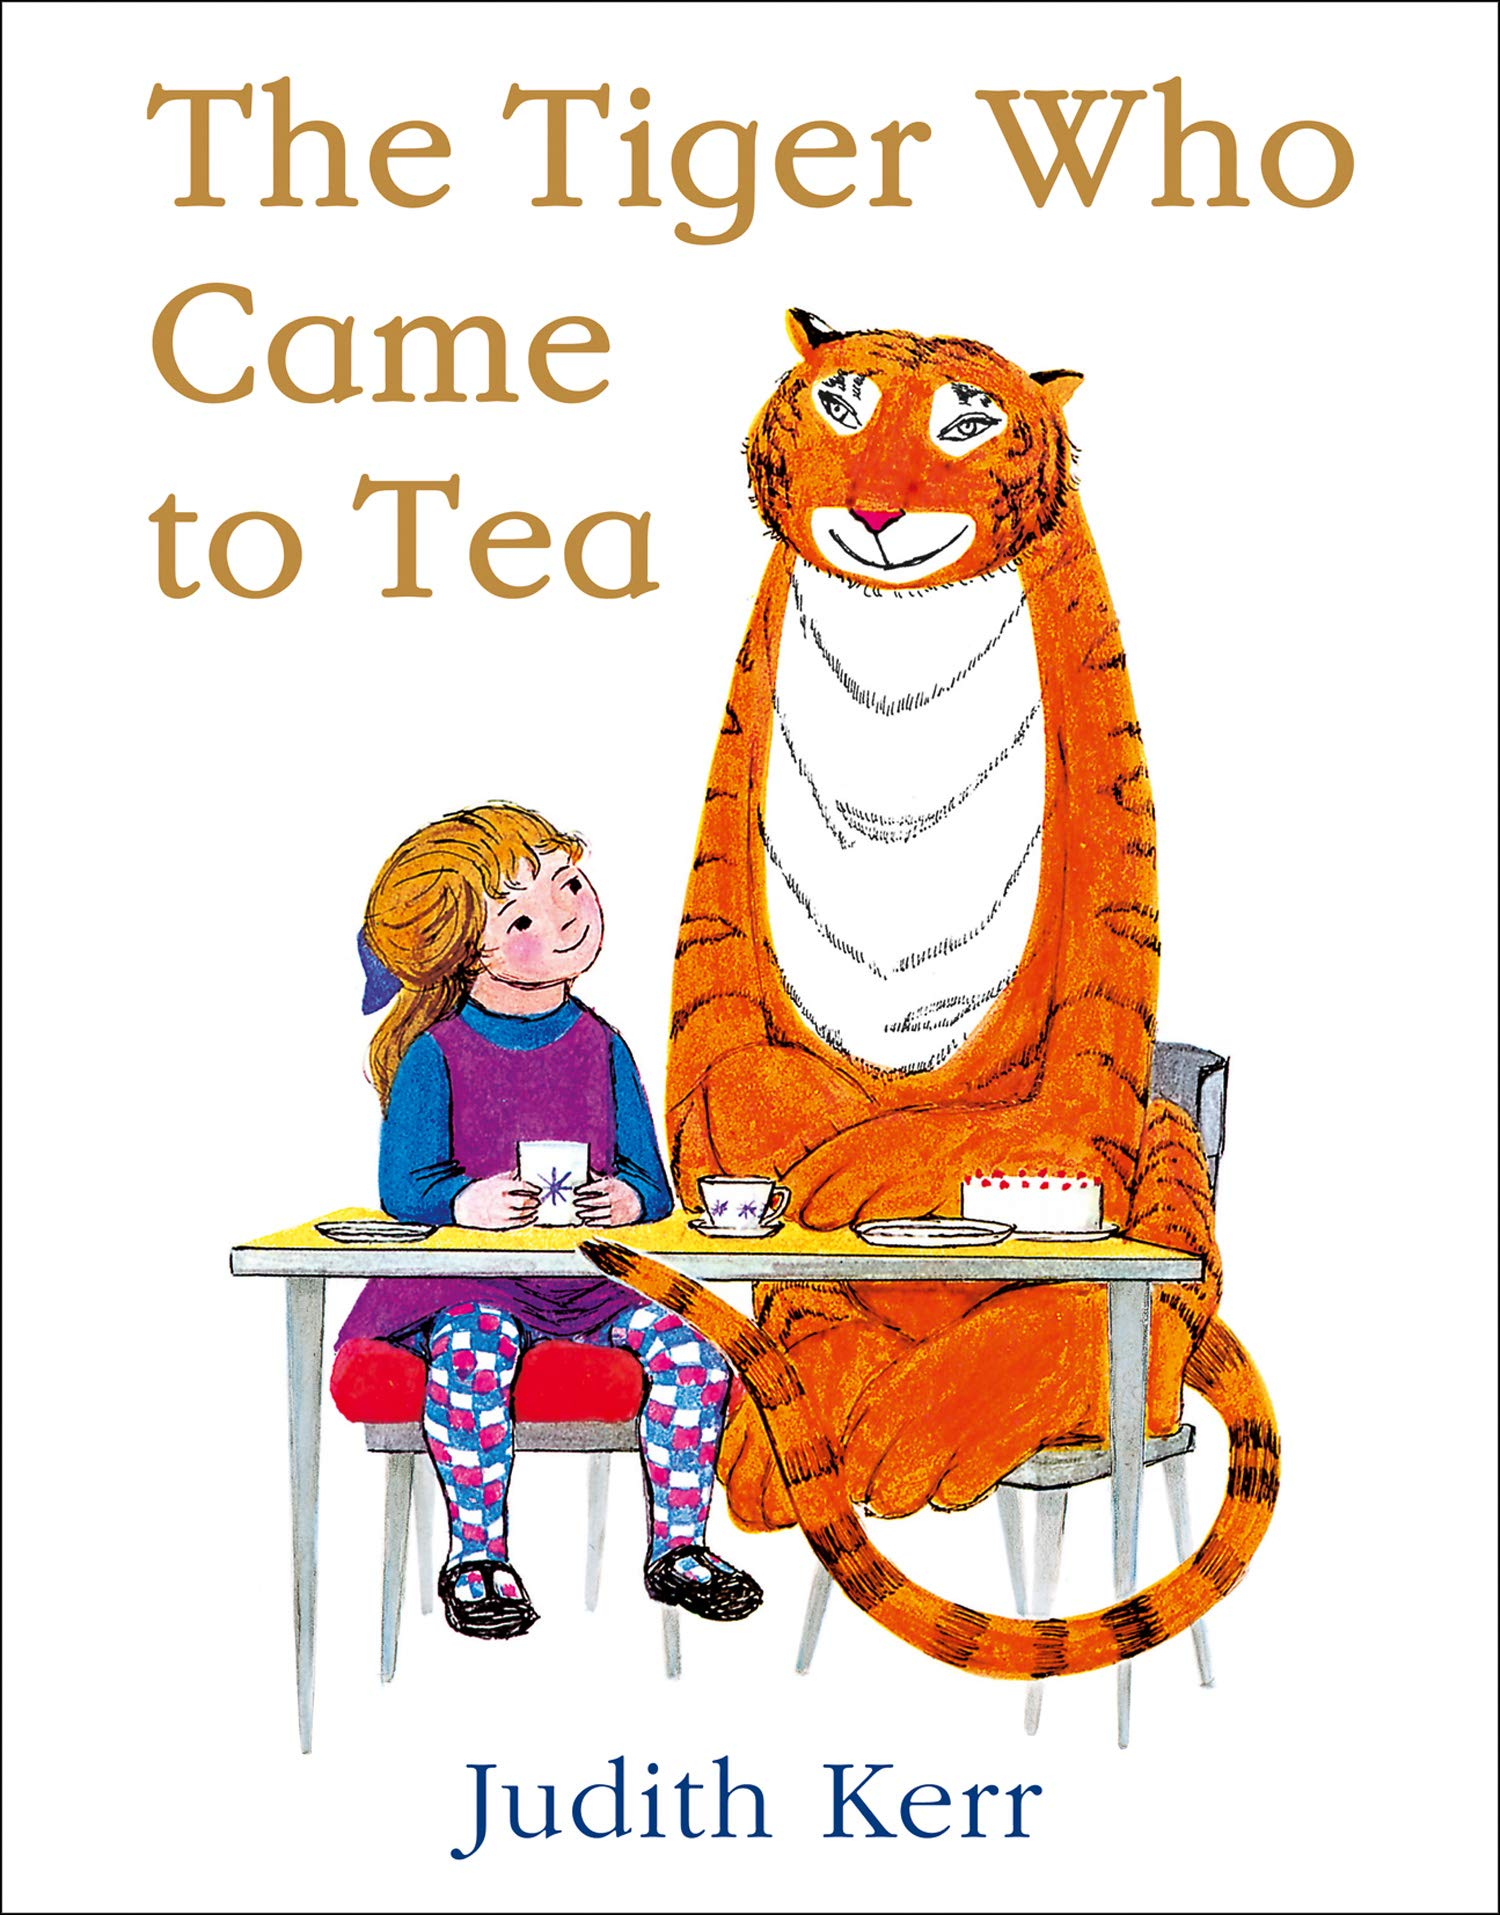 The Tiger Who Came to Tea | Amazon.com.br